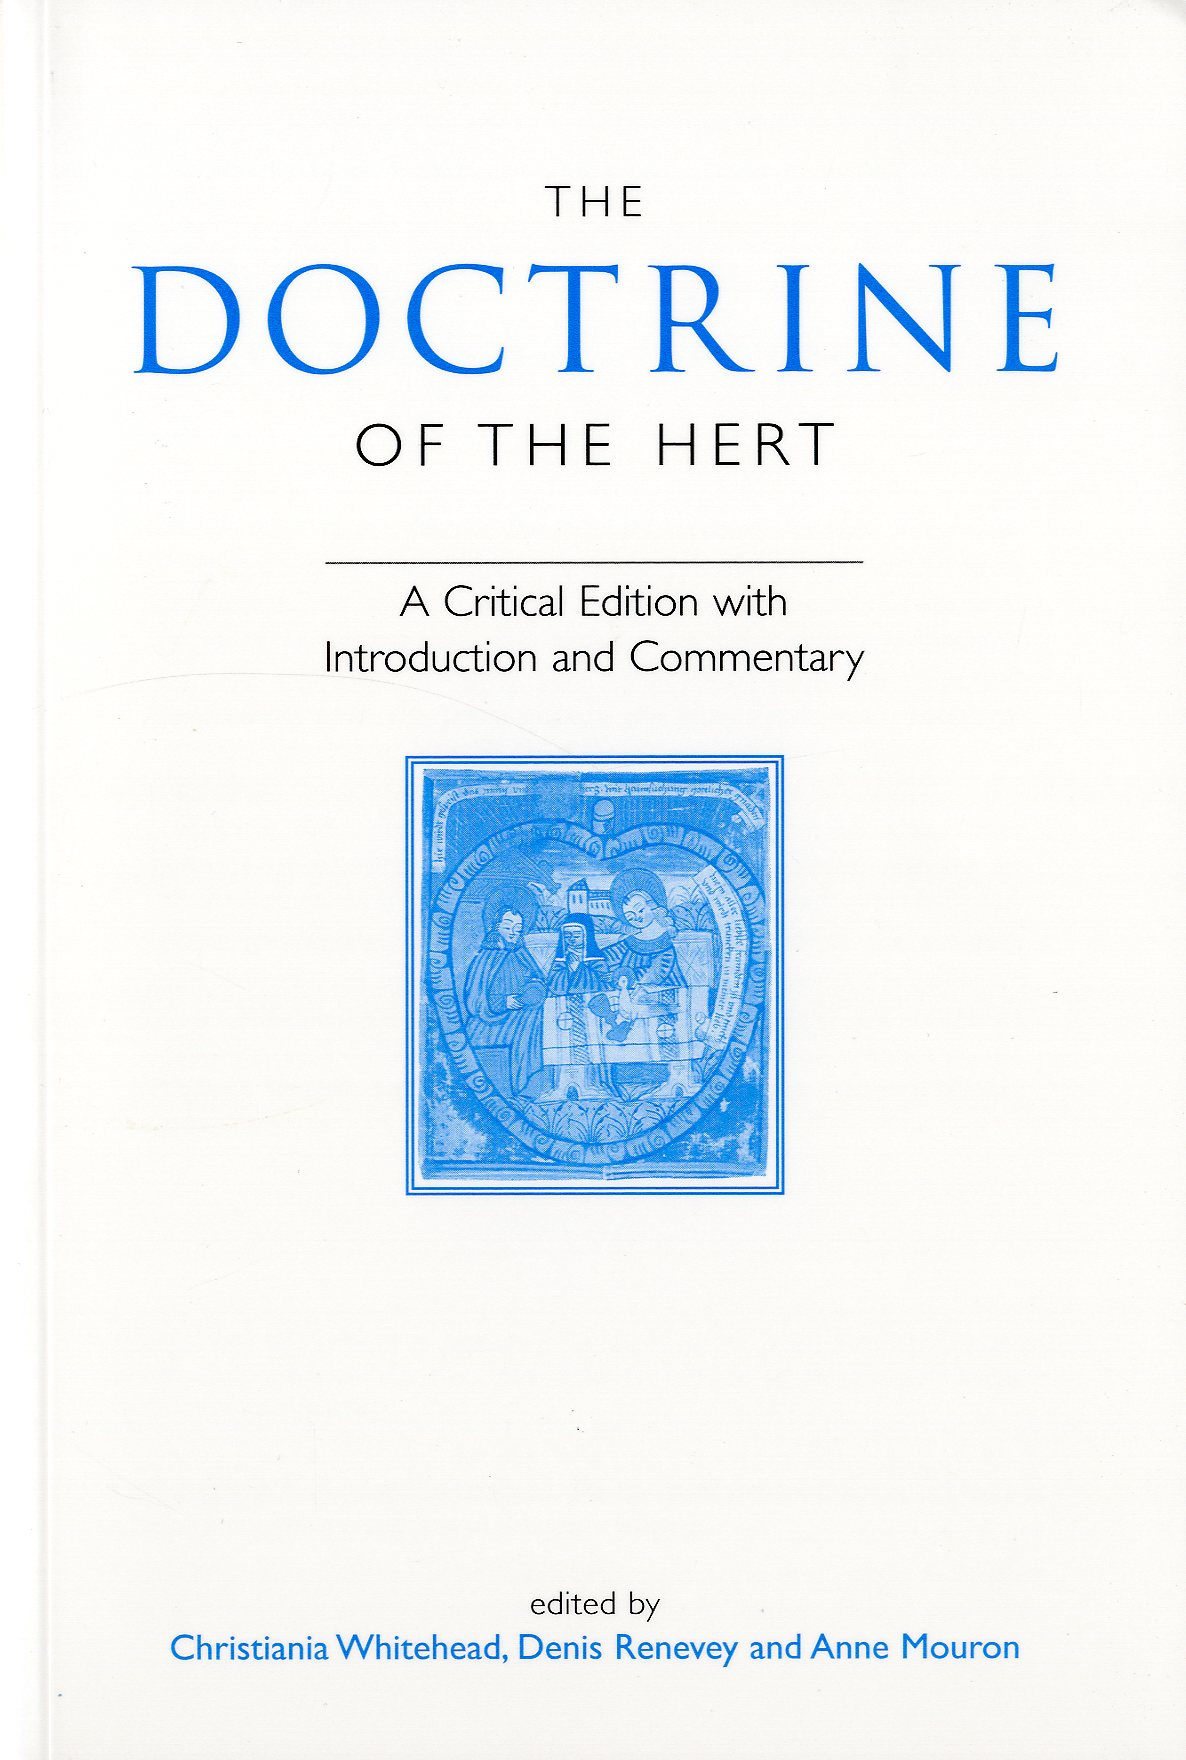 Dissertation on the doctrine of hell